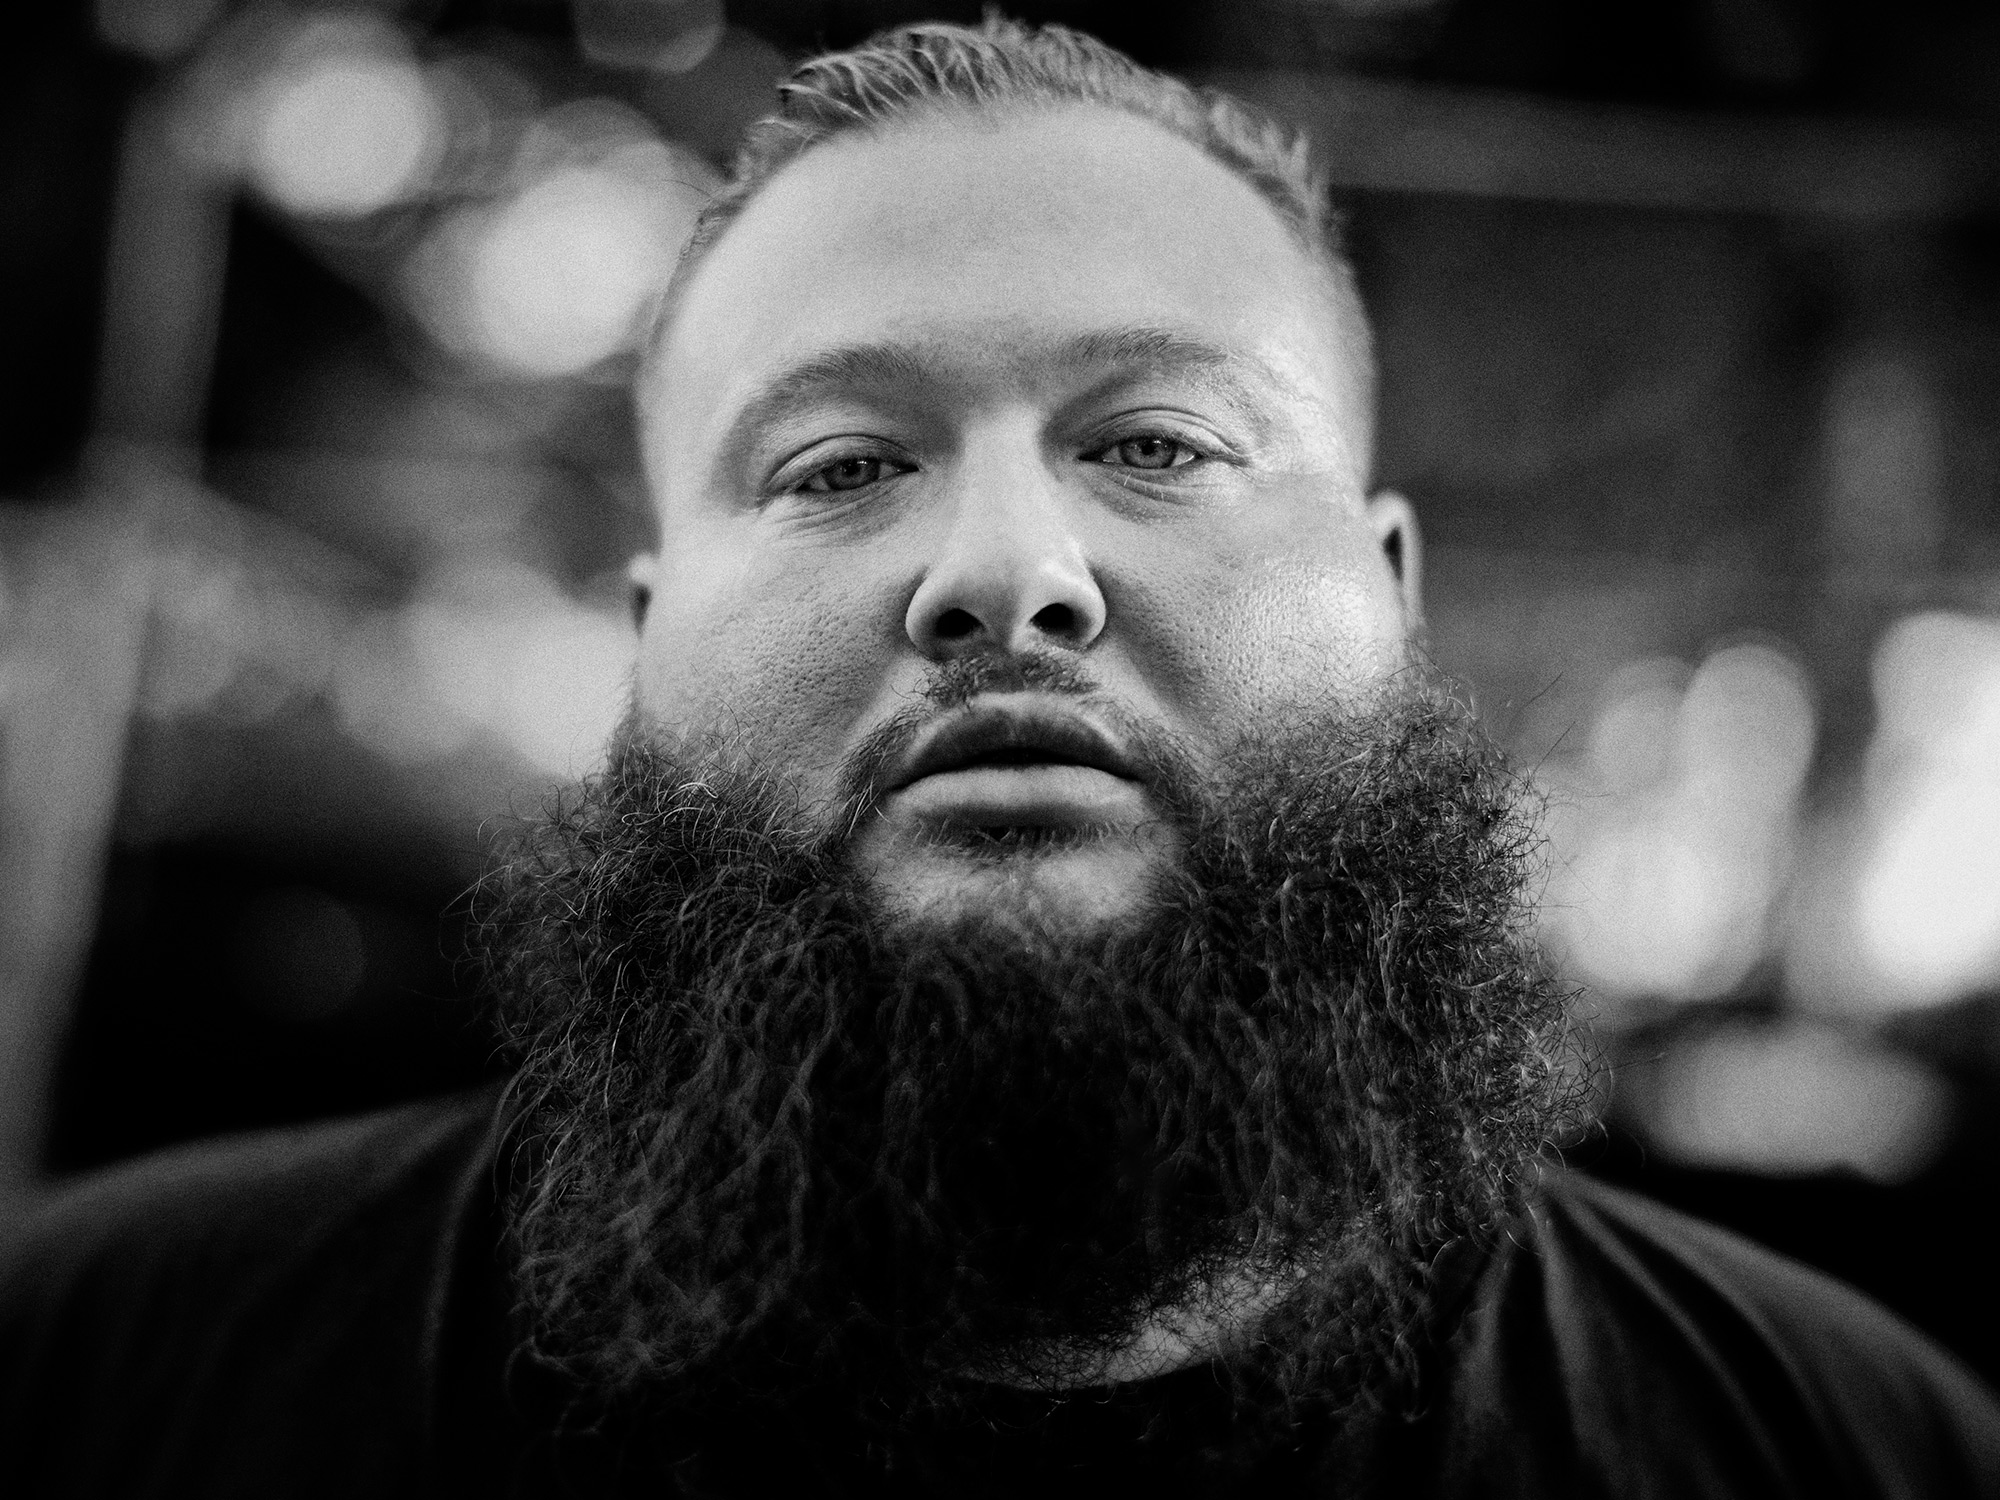 Action Bronson, hip hop artist, rapper and chef, backstage at Beerfest 2014 in Houston, Texas captured by Houston editorial and commercial photographer, Todd Spoth.